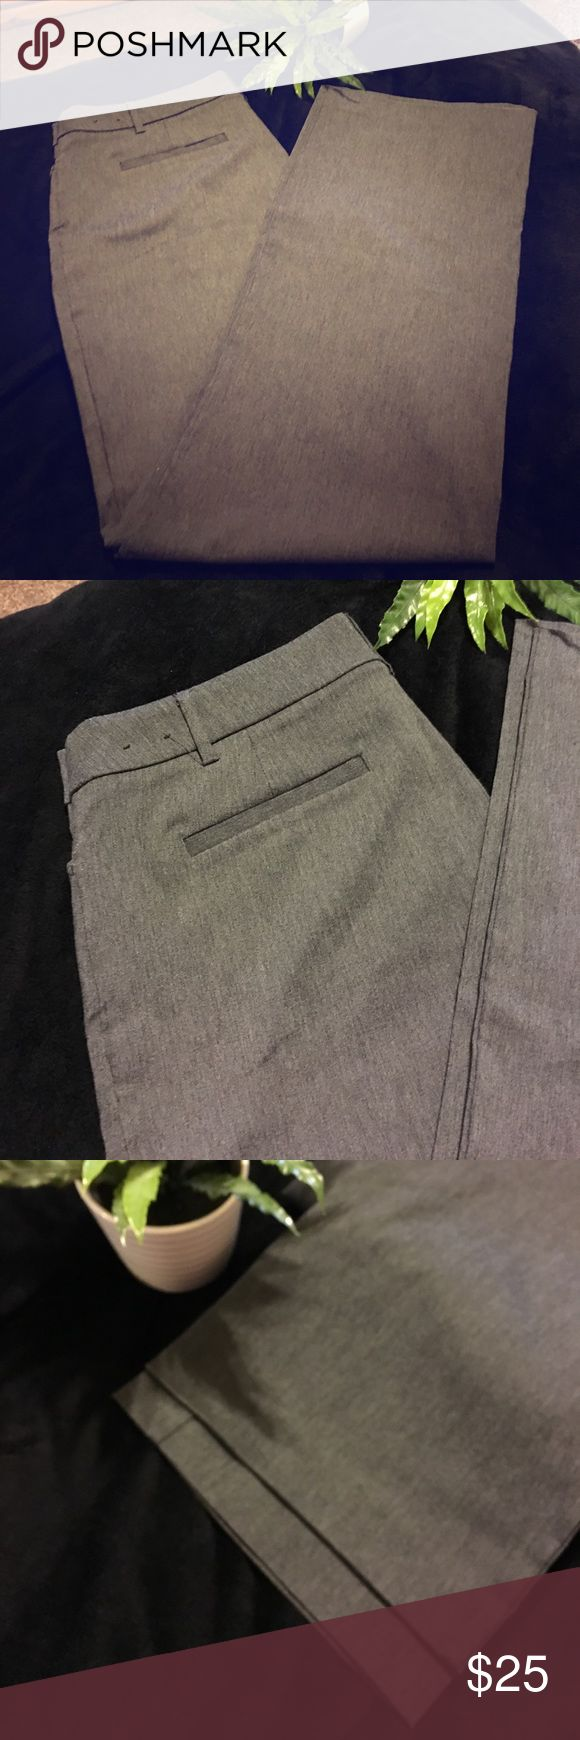 💕EUC! Sz 12, Gray Dress pant, Stretch! Nice! 💕 💕EUC! Sz 12, Gray Slack, thick! Stretch! Nice! 💕. Excellent pair of gray slacks. Super nice material. You would think that you just purchased these right off the rack. They have a nice stretch to them. Even the buttons and the slides look like they are in brand-new condition. This would be an excellent purchase for the woman who has to dress up for work which I no longer have to do!!  💕❤️💕 Fashion Bug Pants Trousers